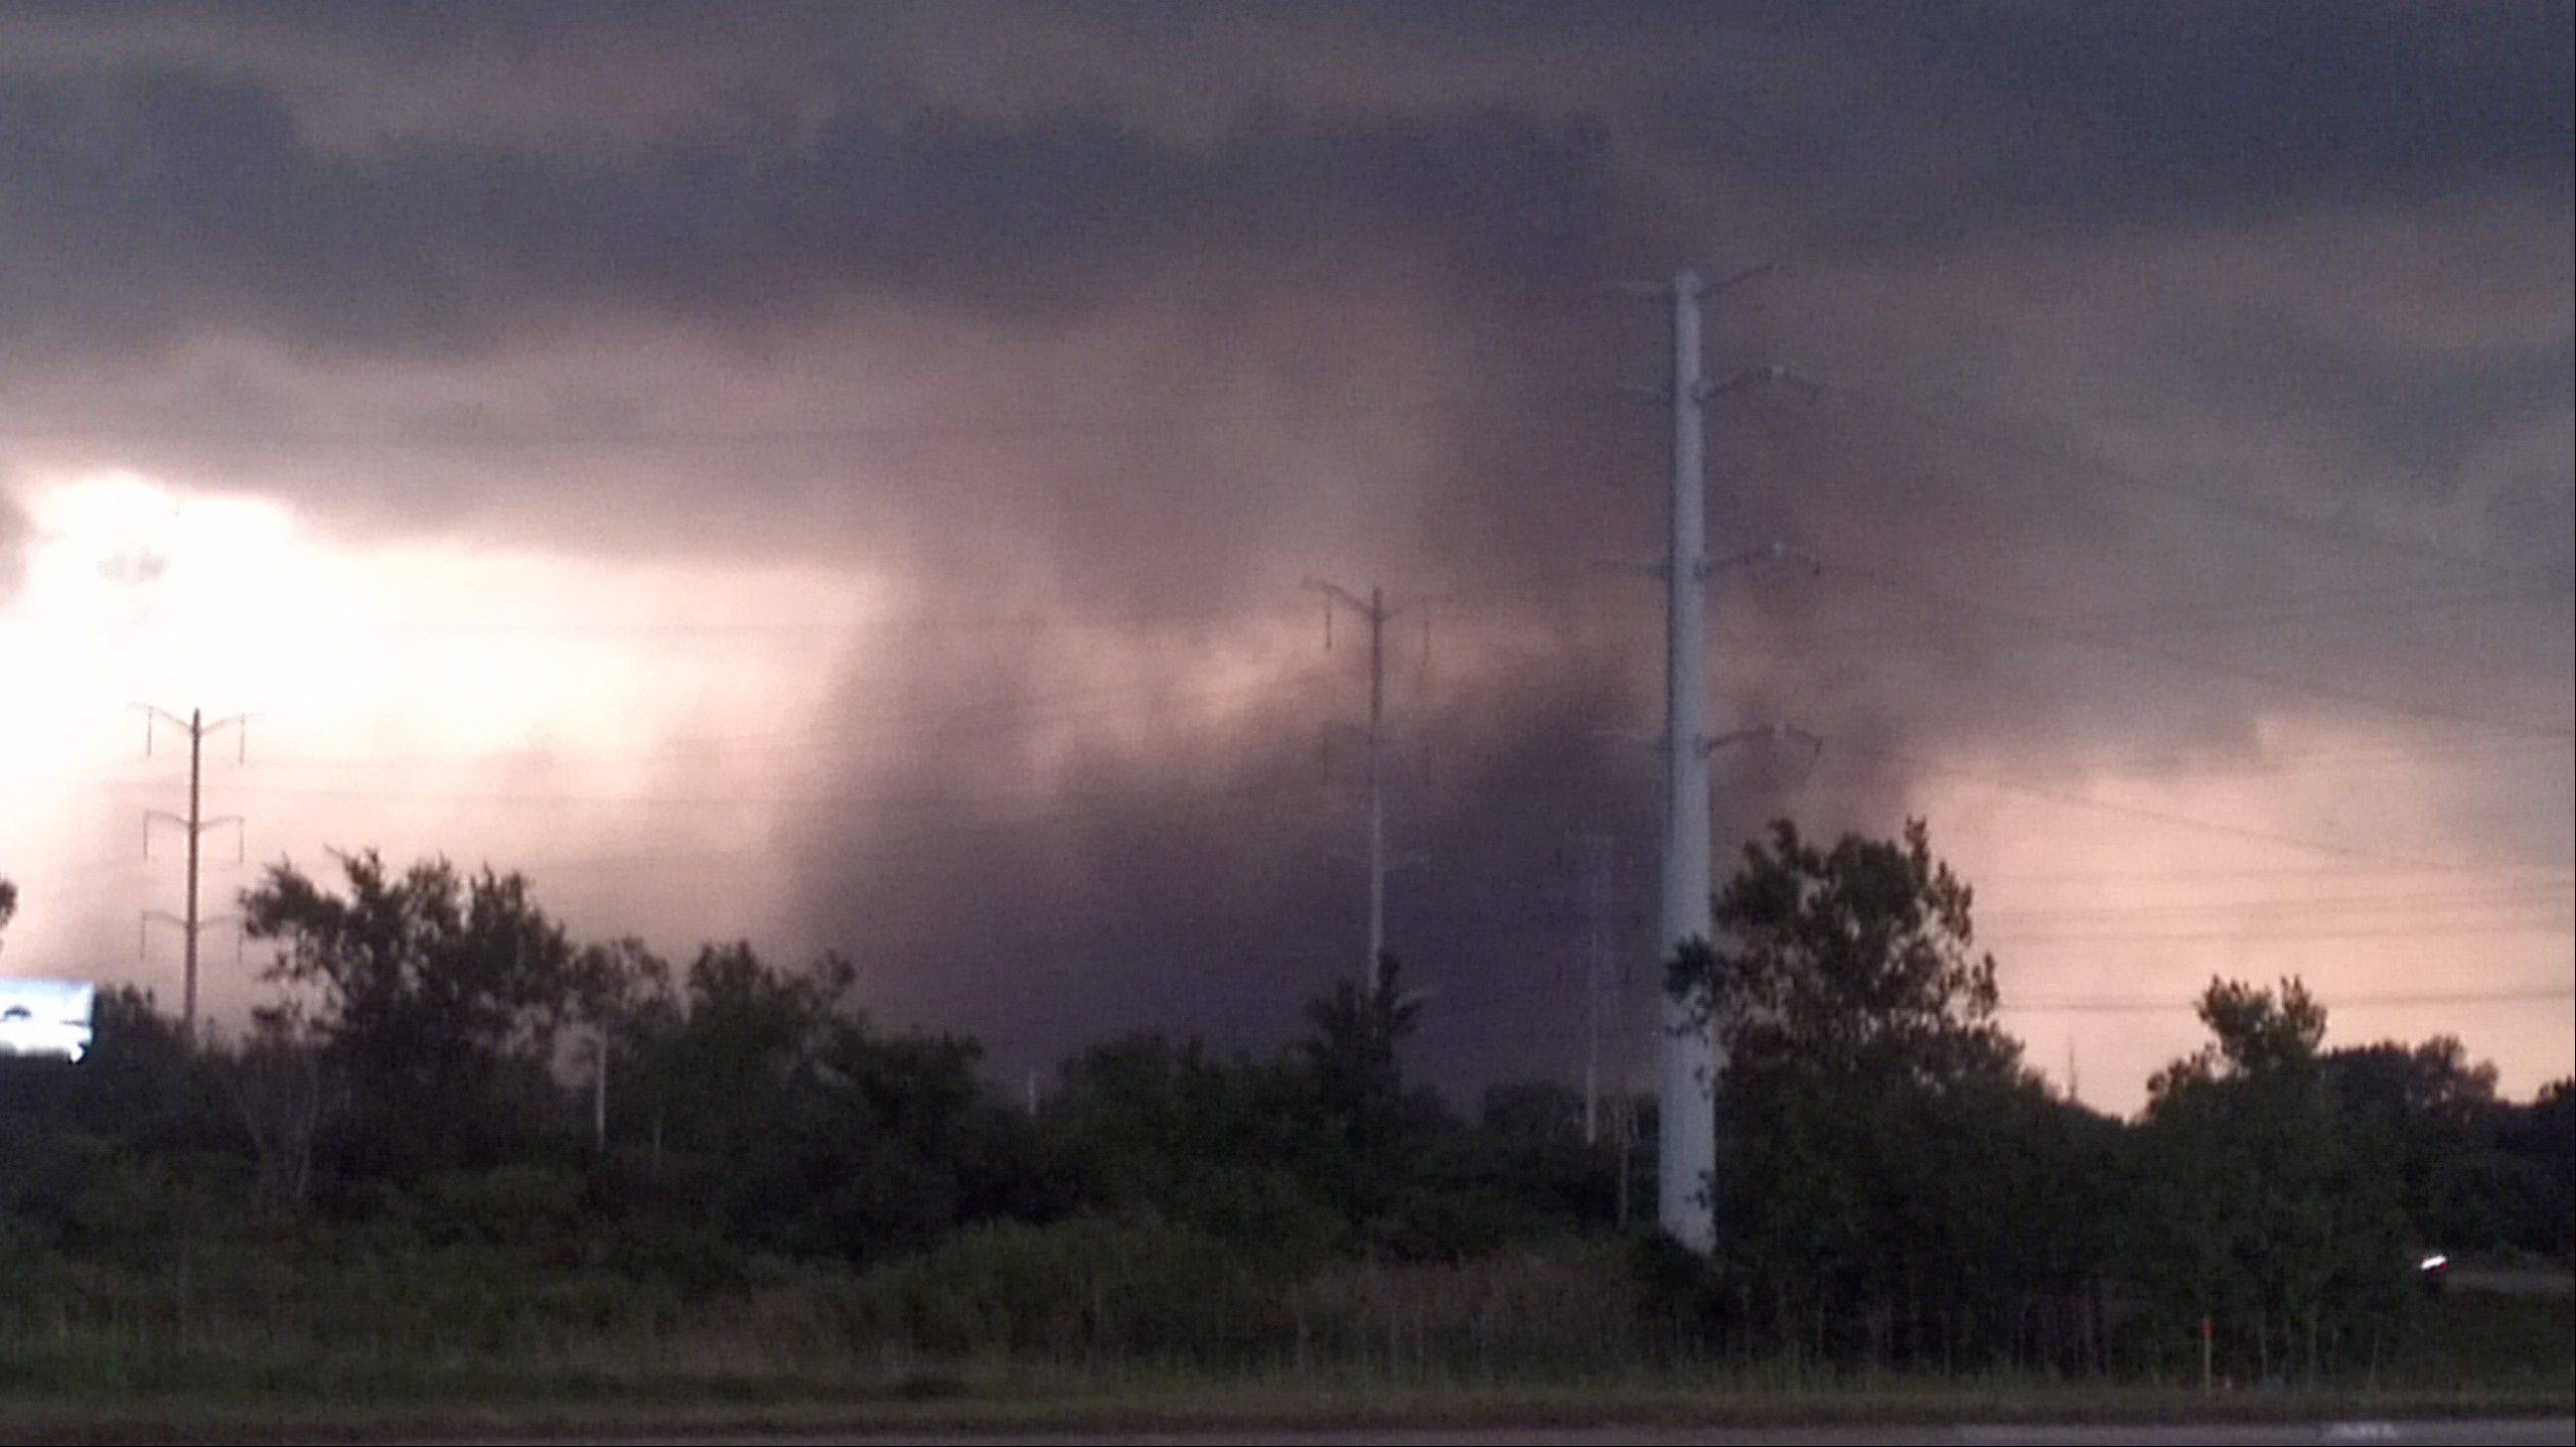 James Wright snapped this shot in Flanagan's parking lot in North Chicago shortly before the storm hit.